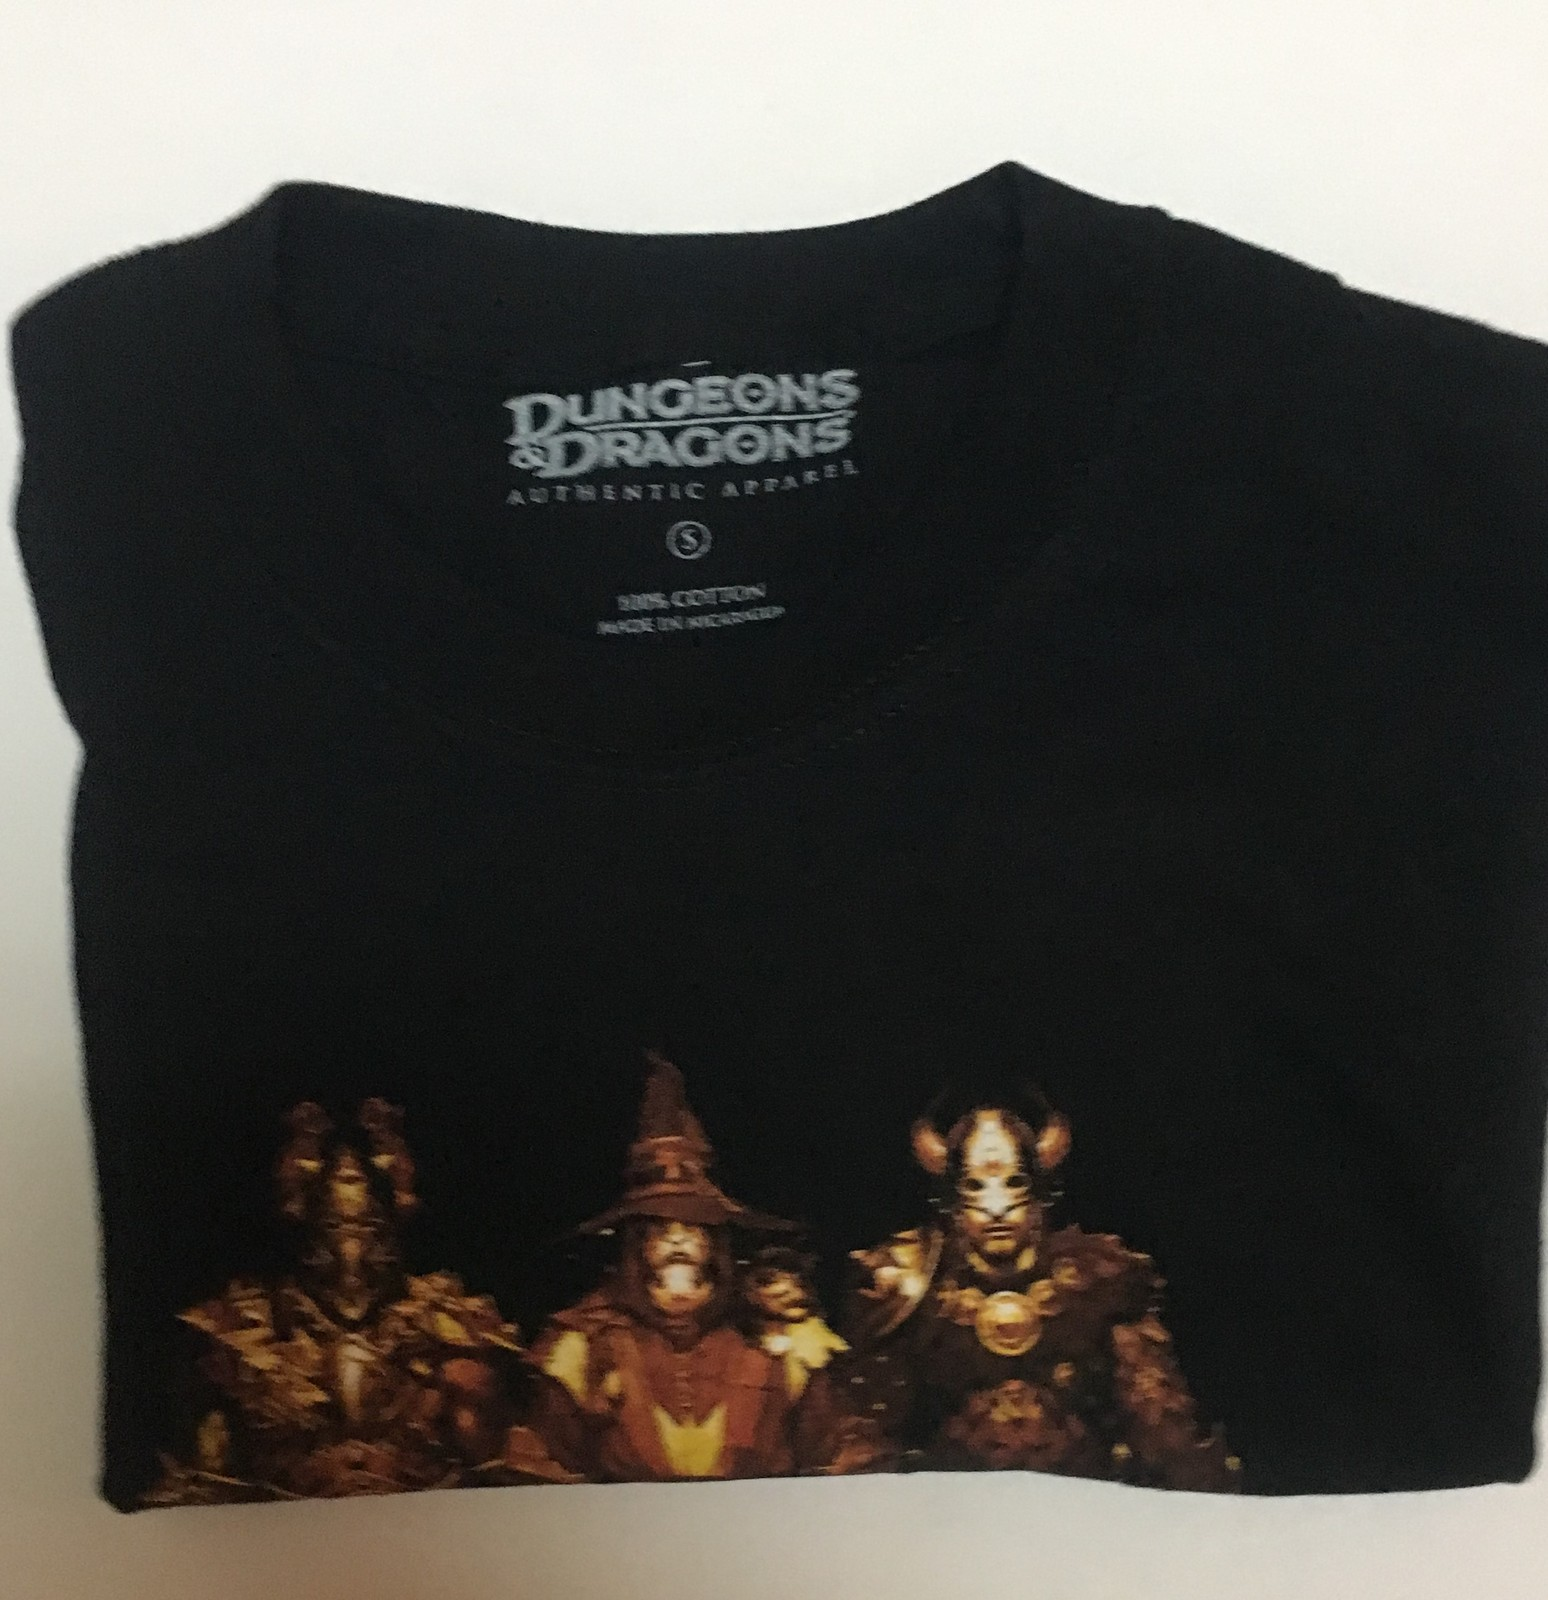 Dungeons & Dragons Black NEVER WINTER T-Shirt Adult Sz Small